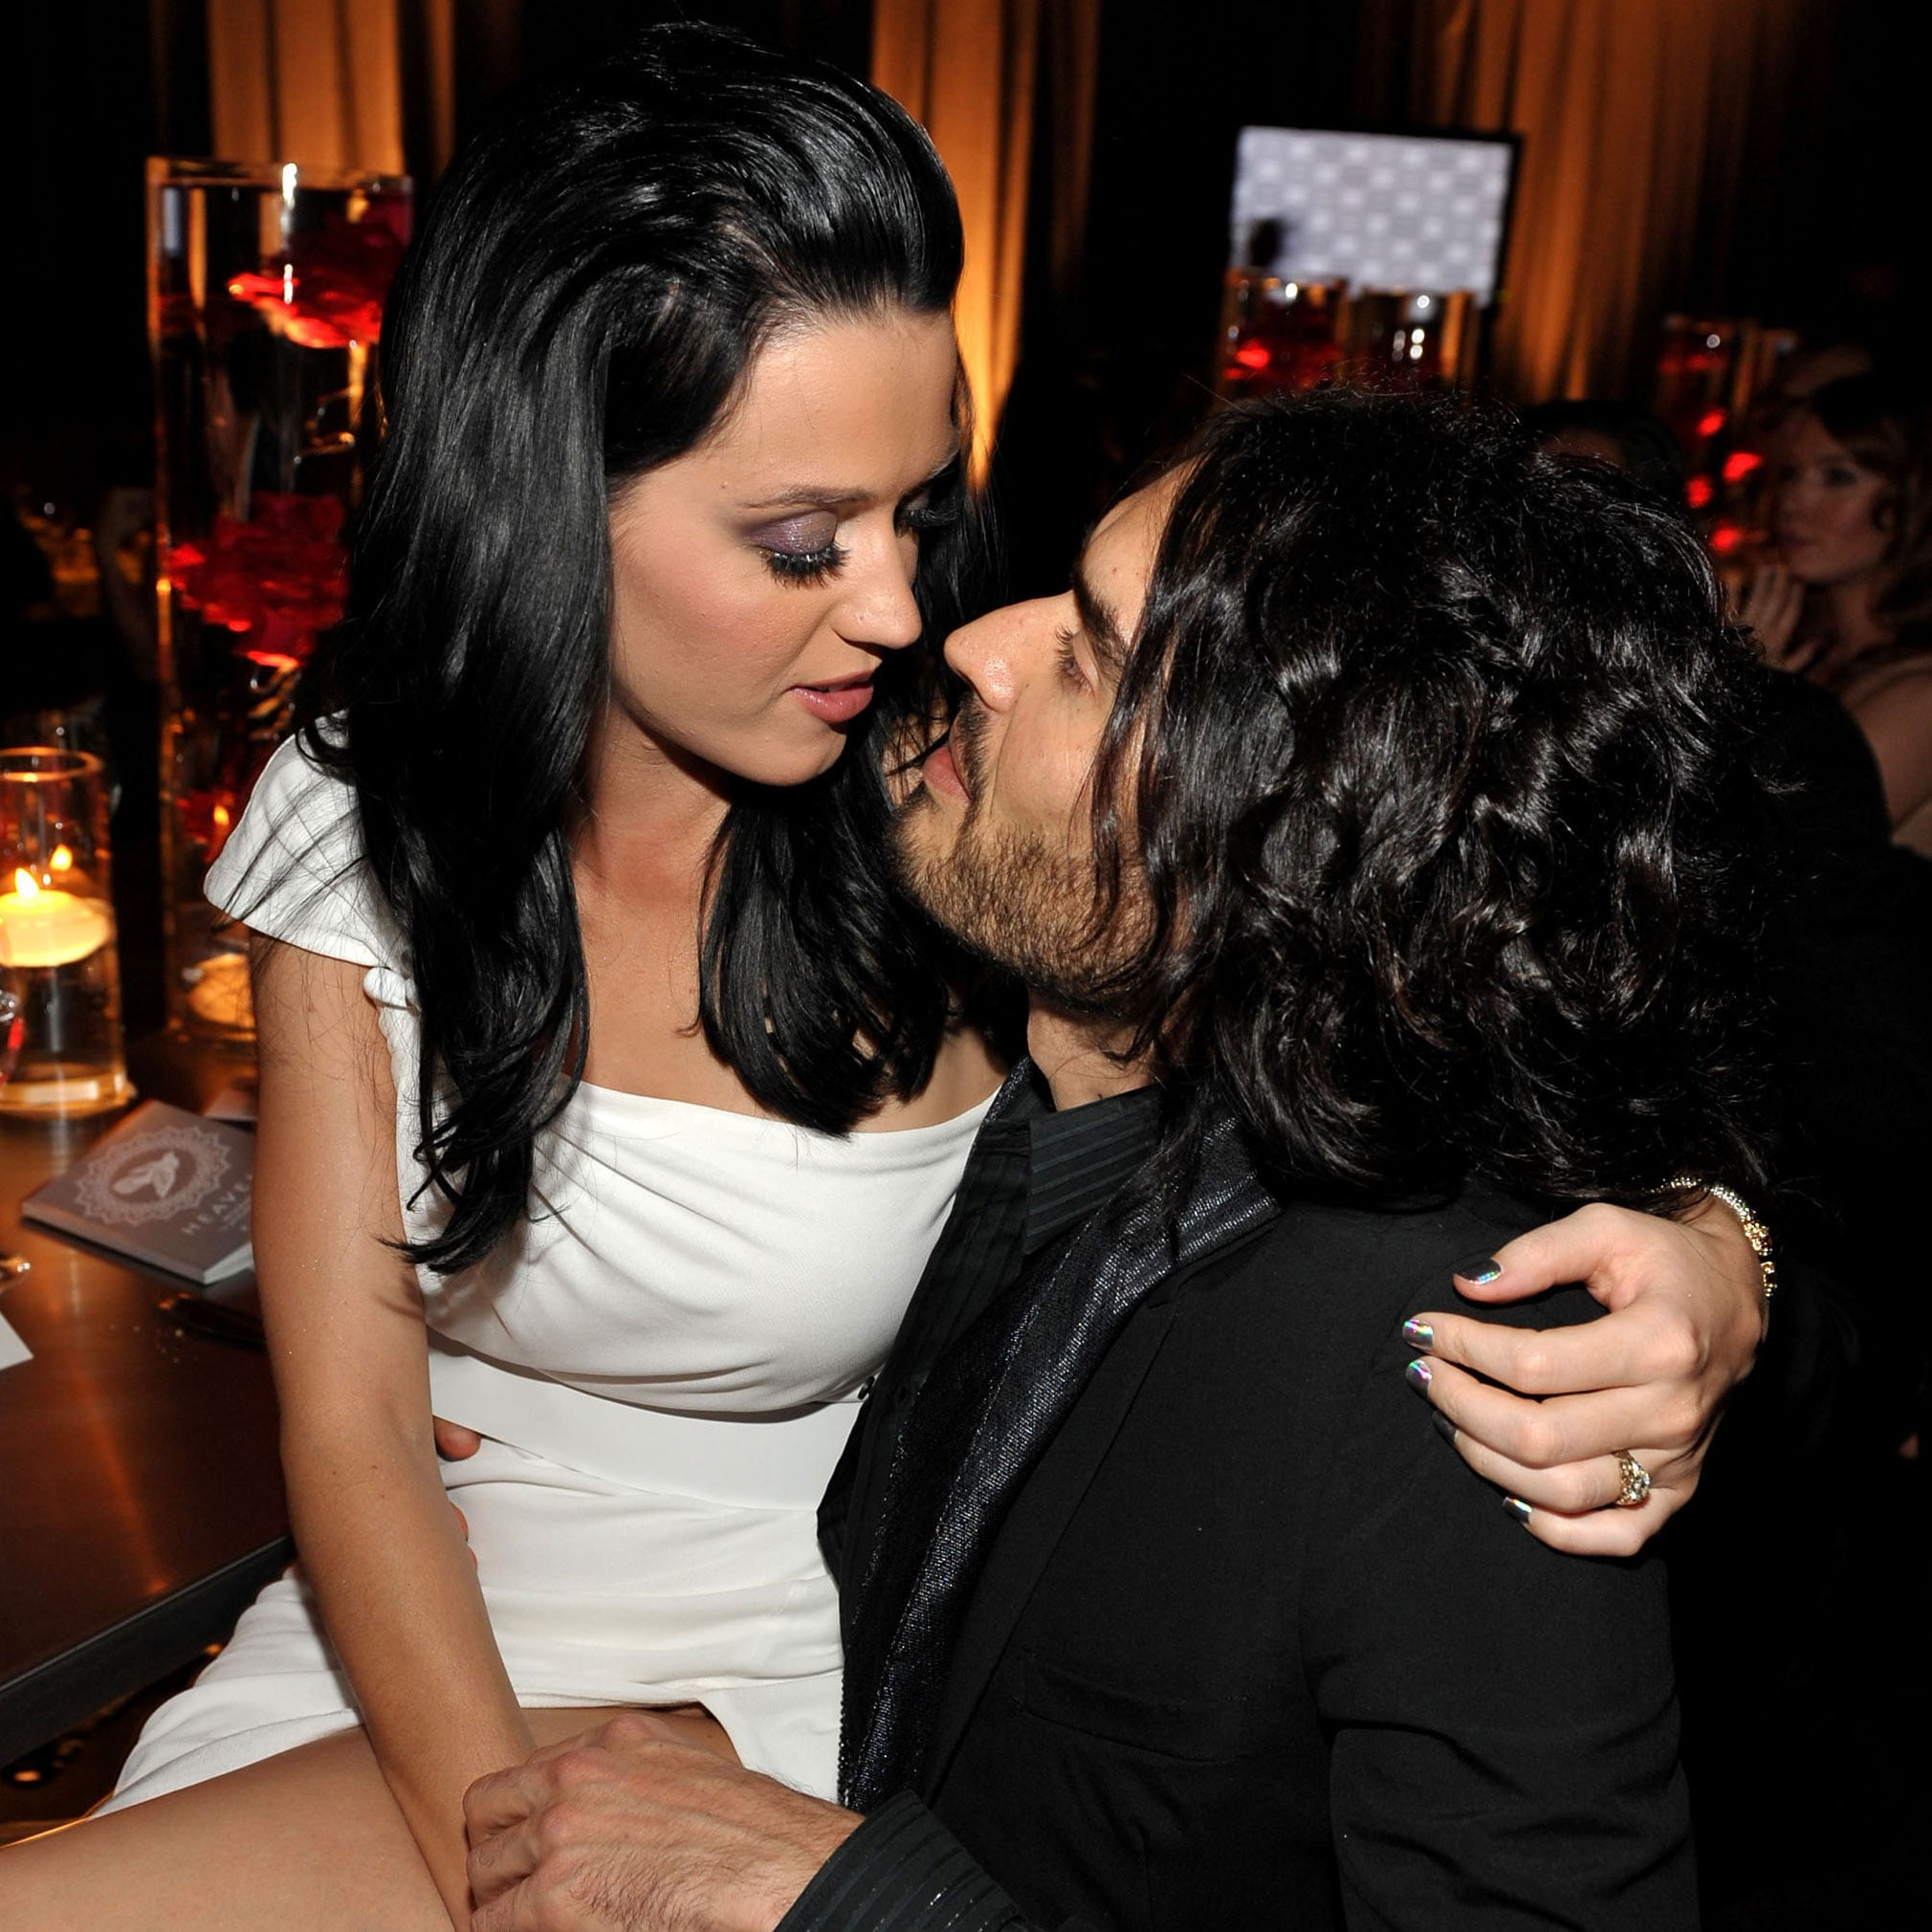 Russell Brand and Katy Perry are going to get married naked 03.02.2010 35